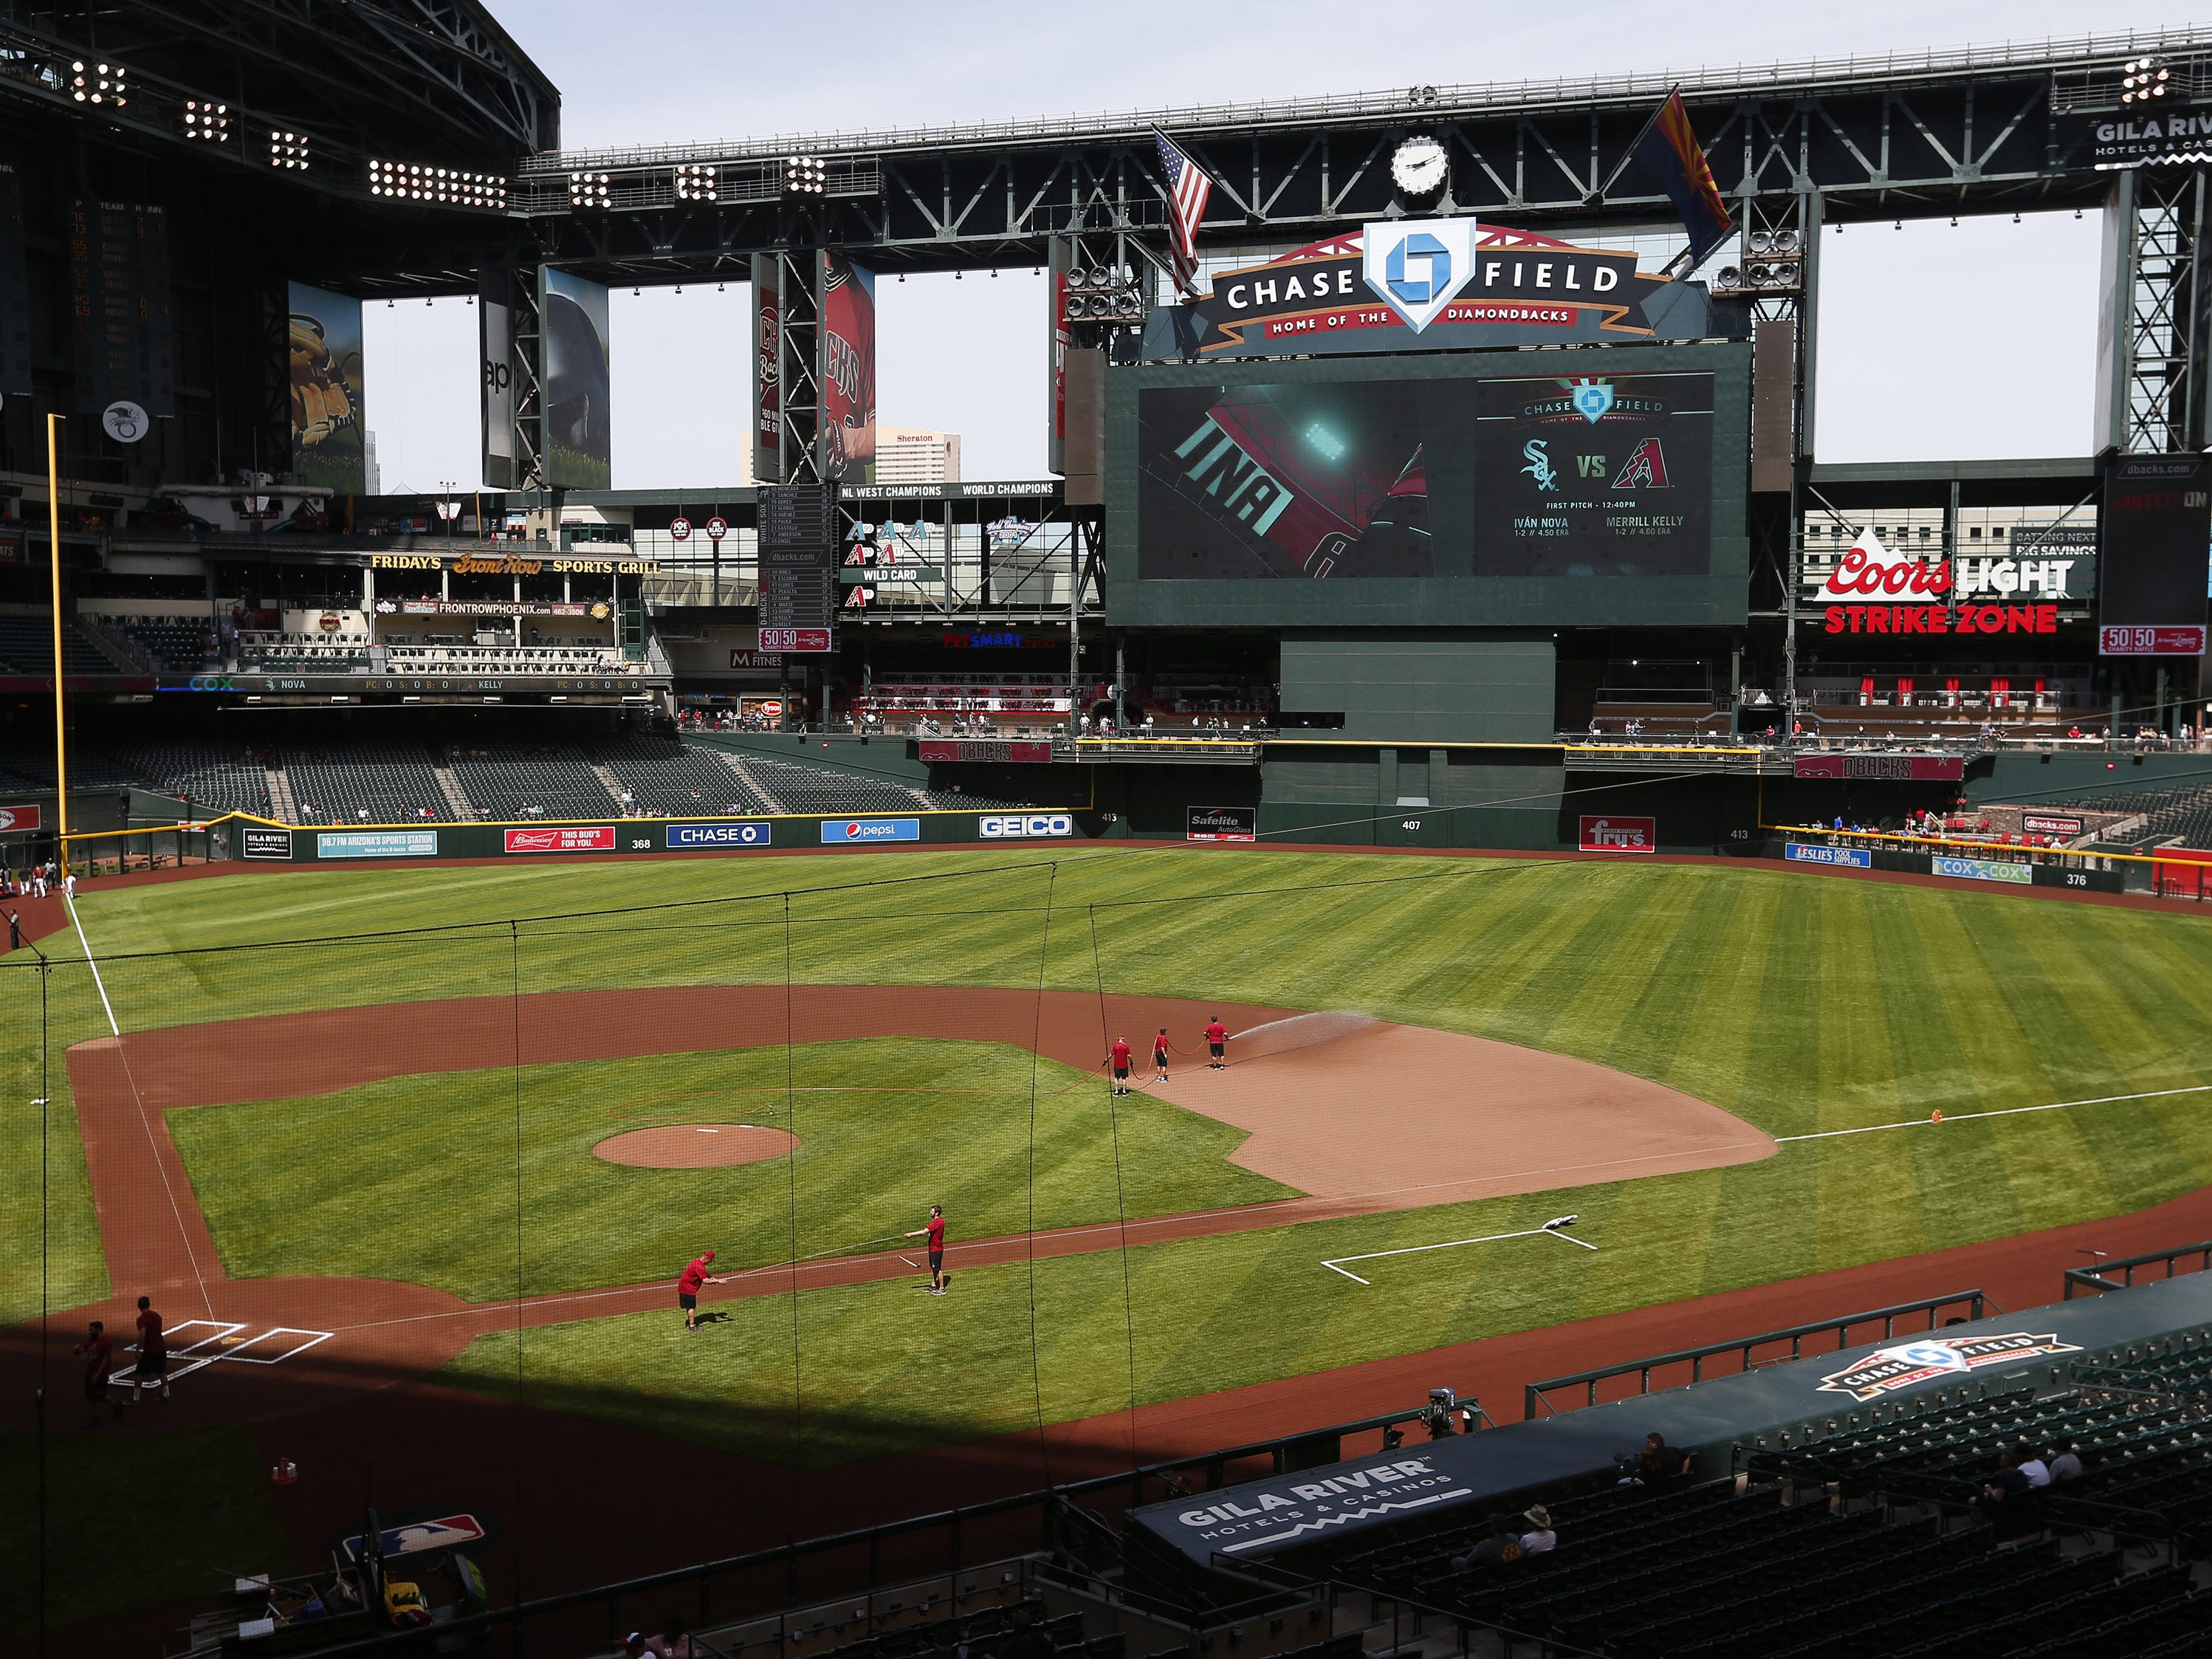 New artificial turf has been installed at Chase Field this season as grounds crew workers to prepare for a spring training game between the Arizona Diamondbacks and the Milwaukee Brewers  March 26, 2019.